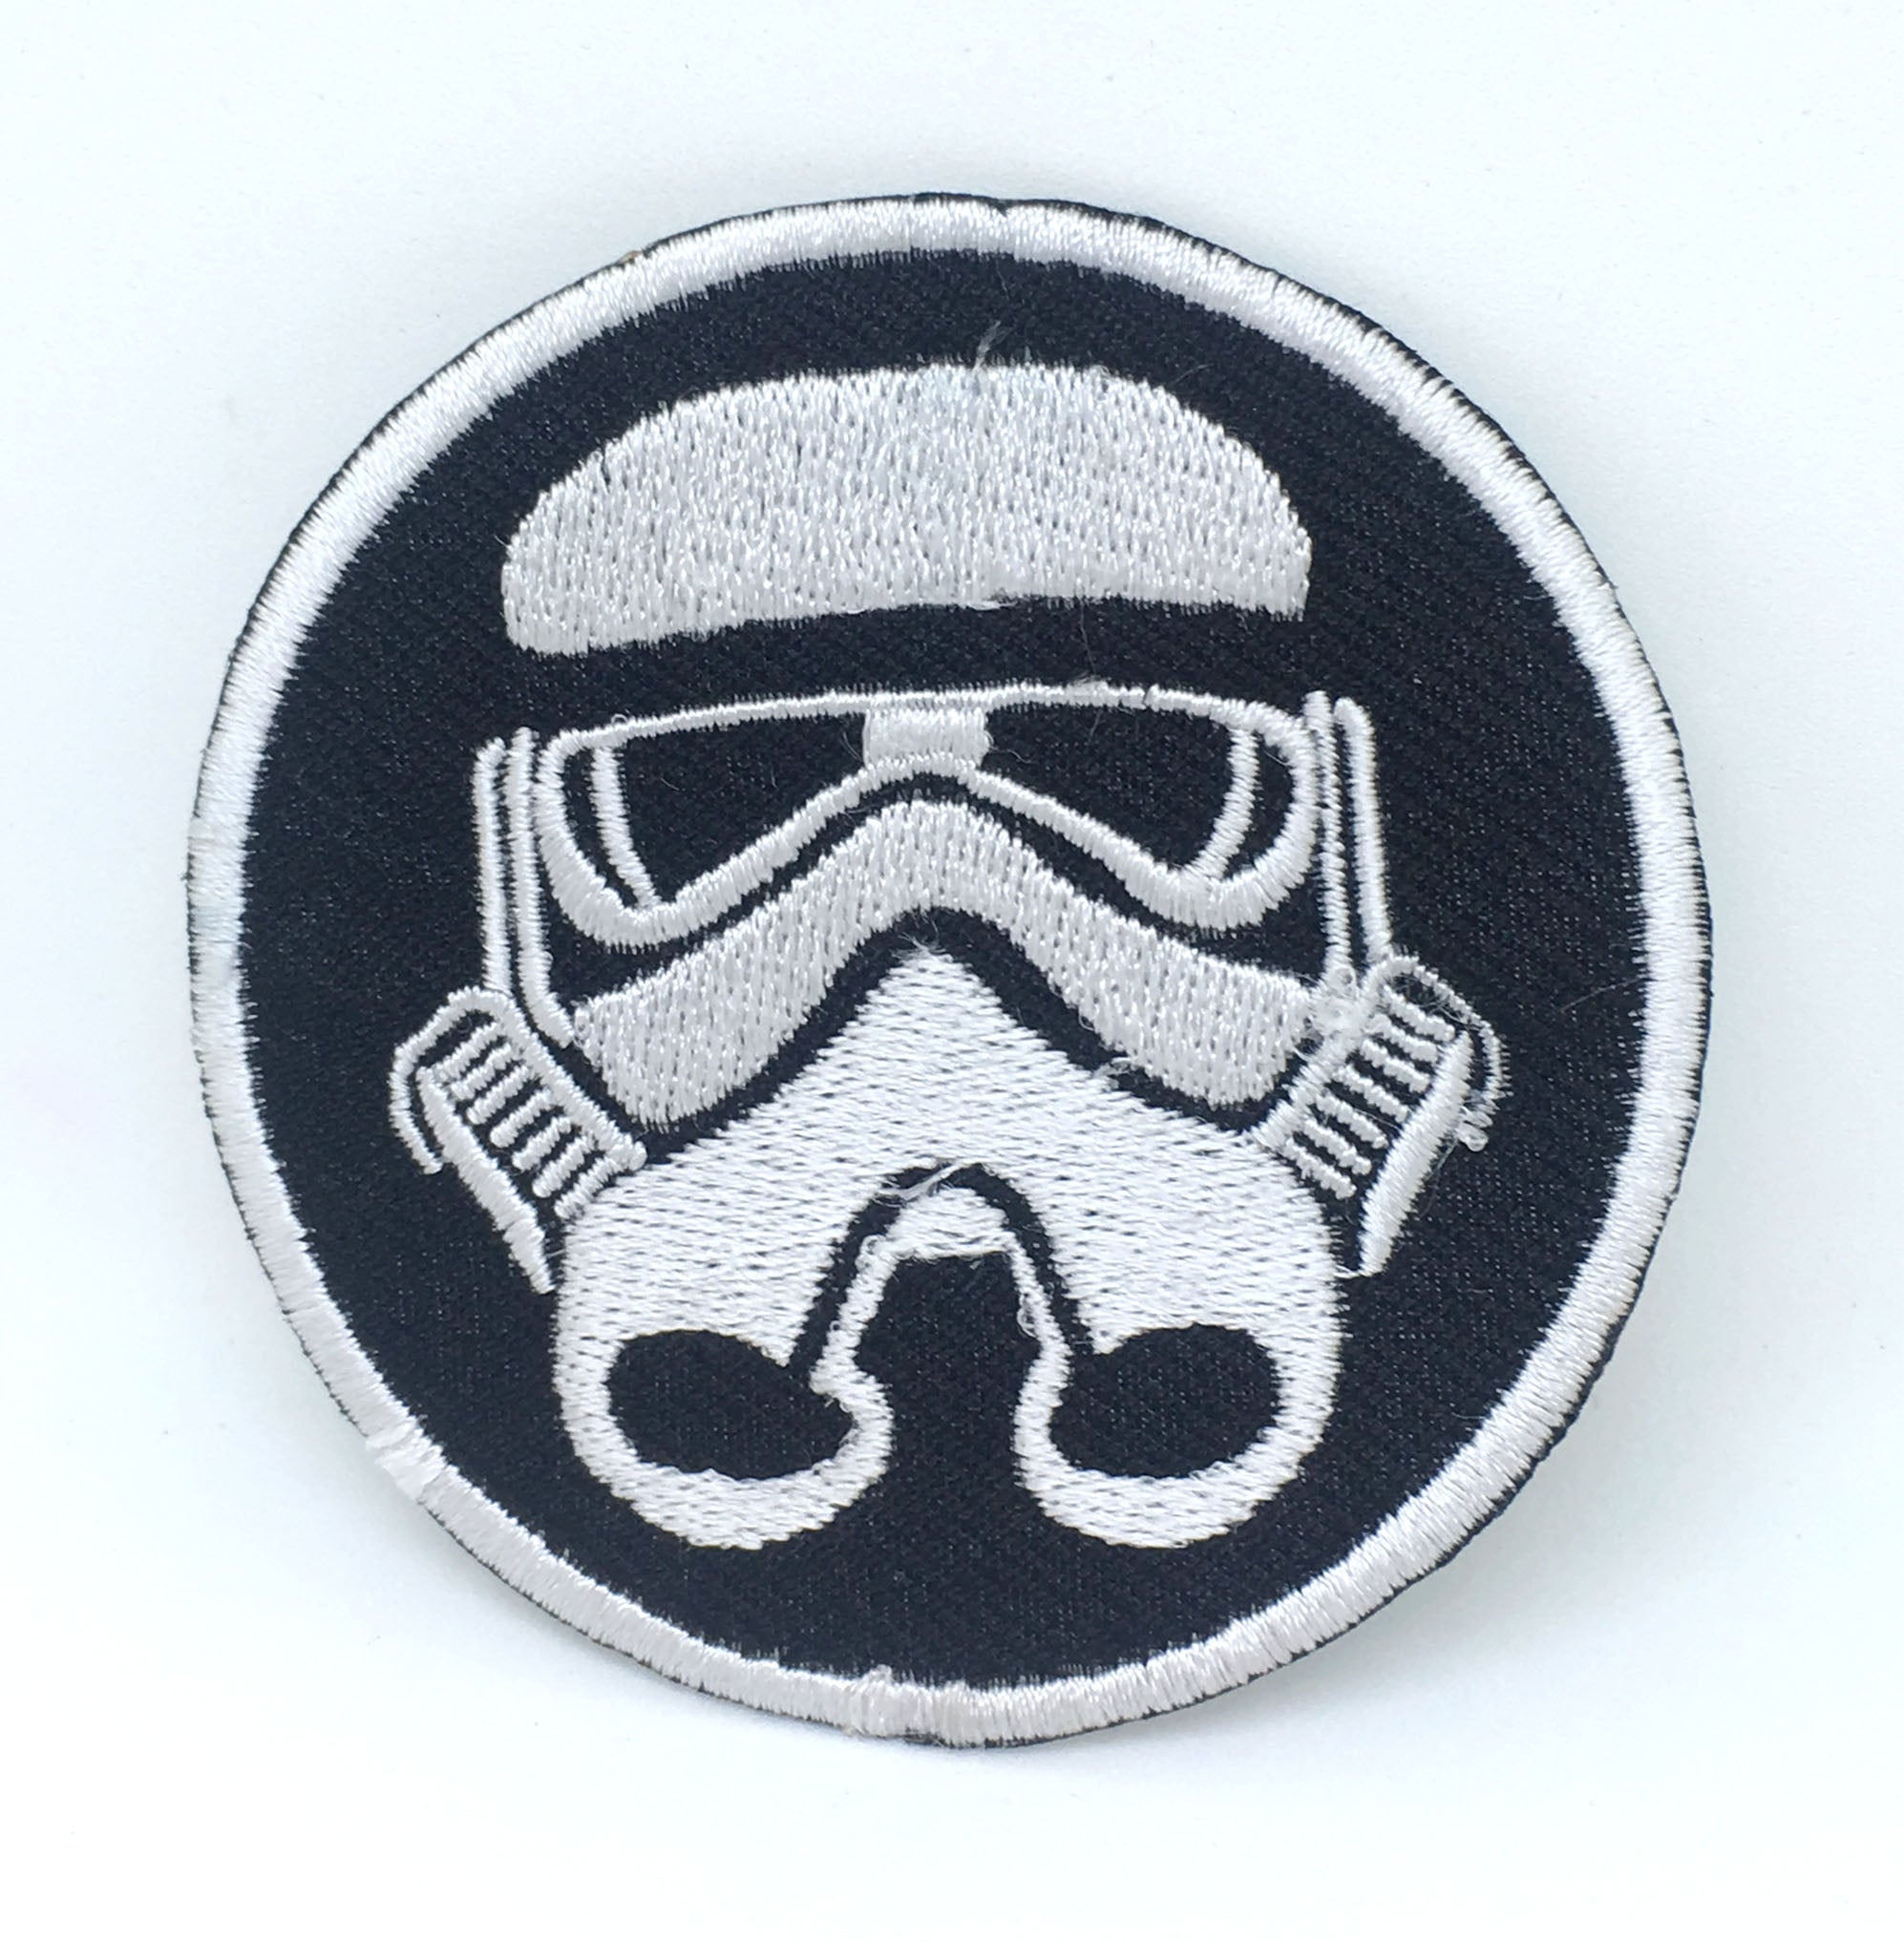 STAR WARS Movies Iron or Sew on Embroidered Patches - Imperial Storm Trooper WHITE BORDER